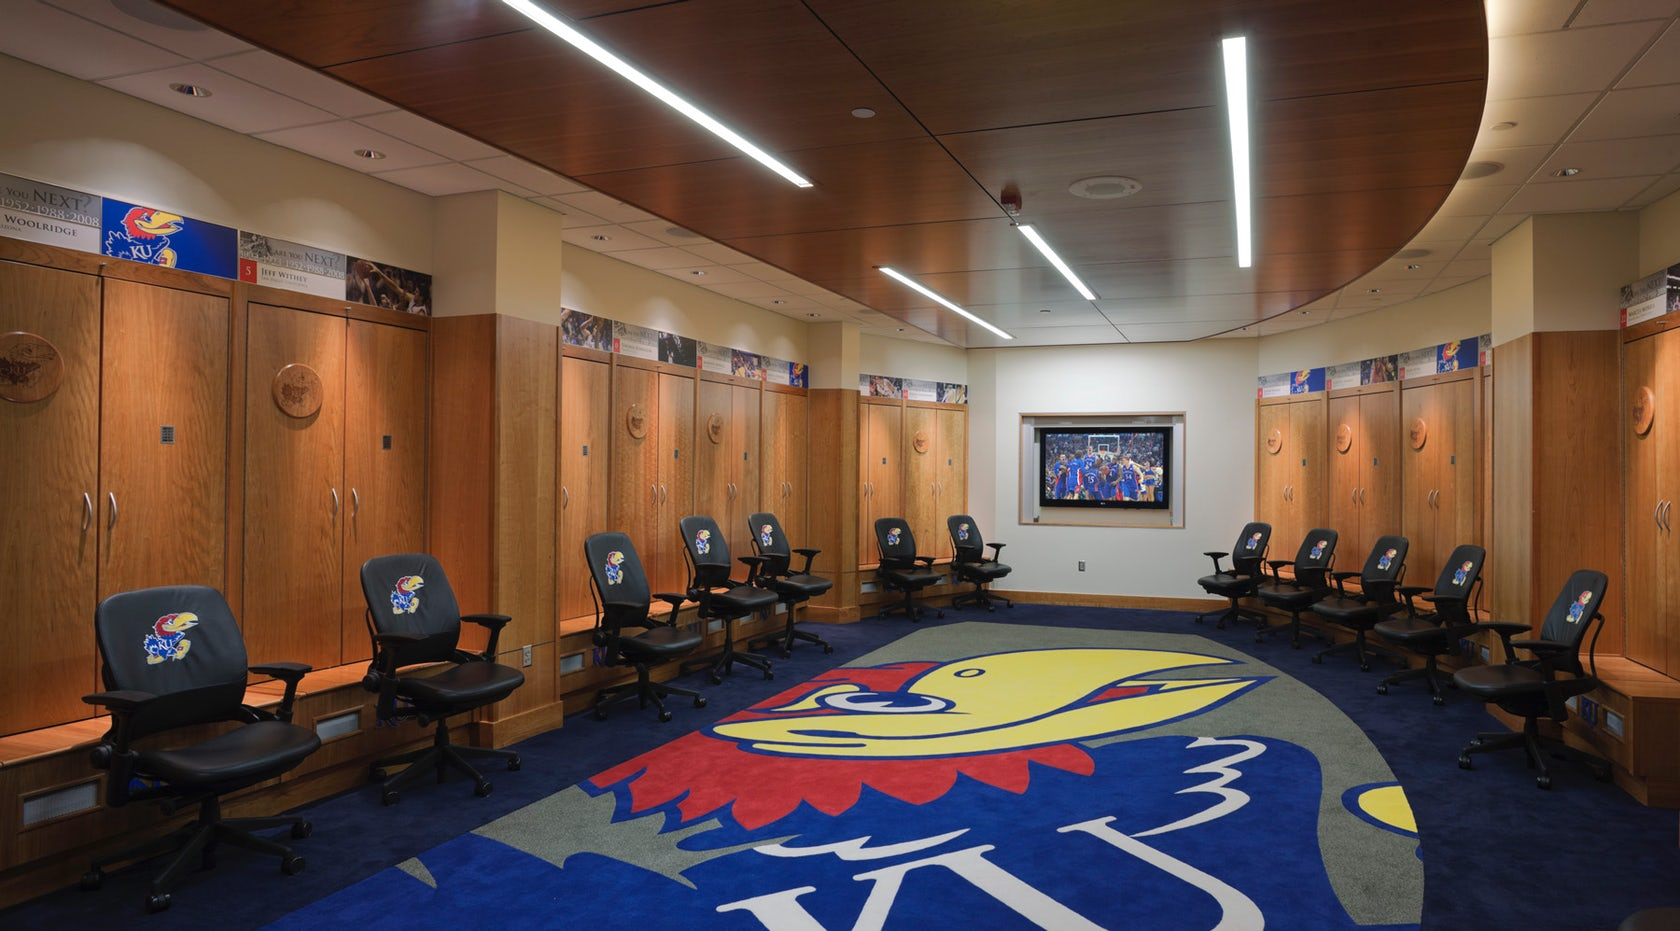 The University of Kansas Allen Fieldhouse and Athletic ...